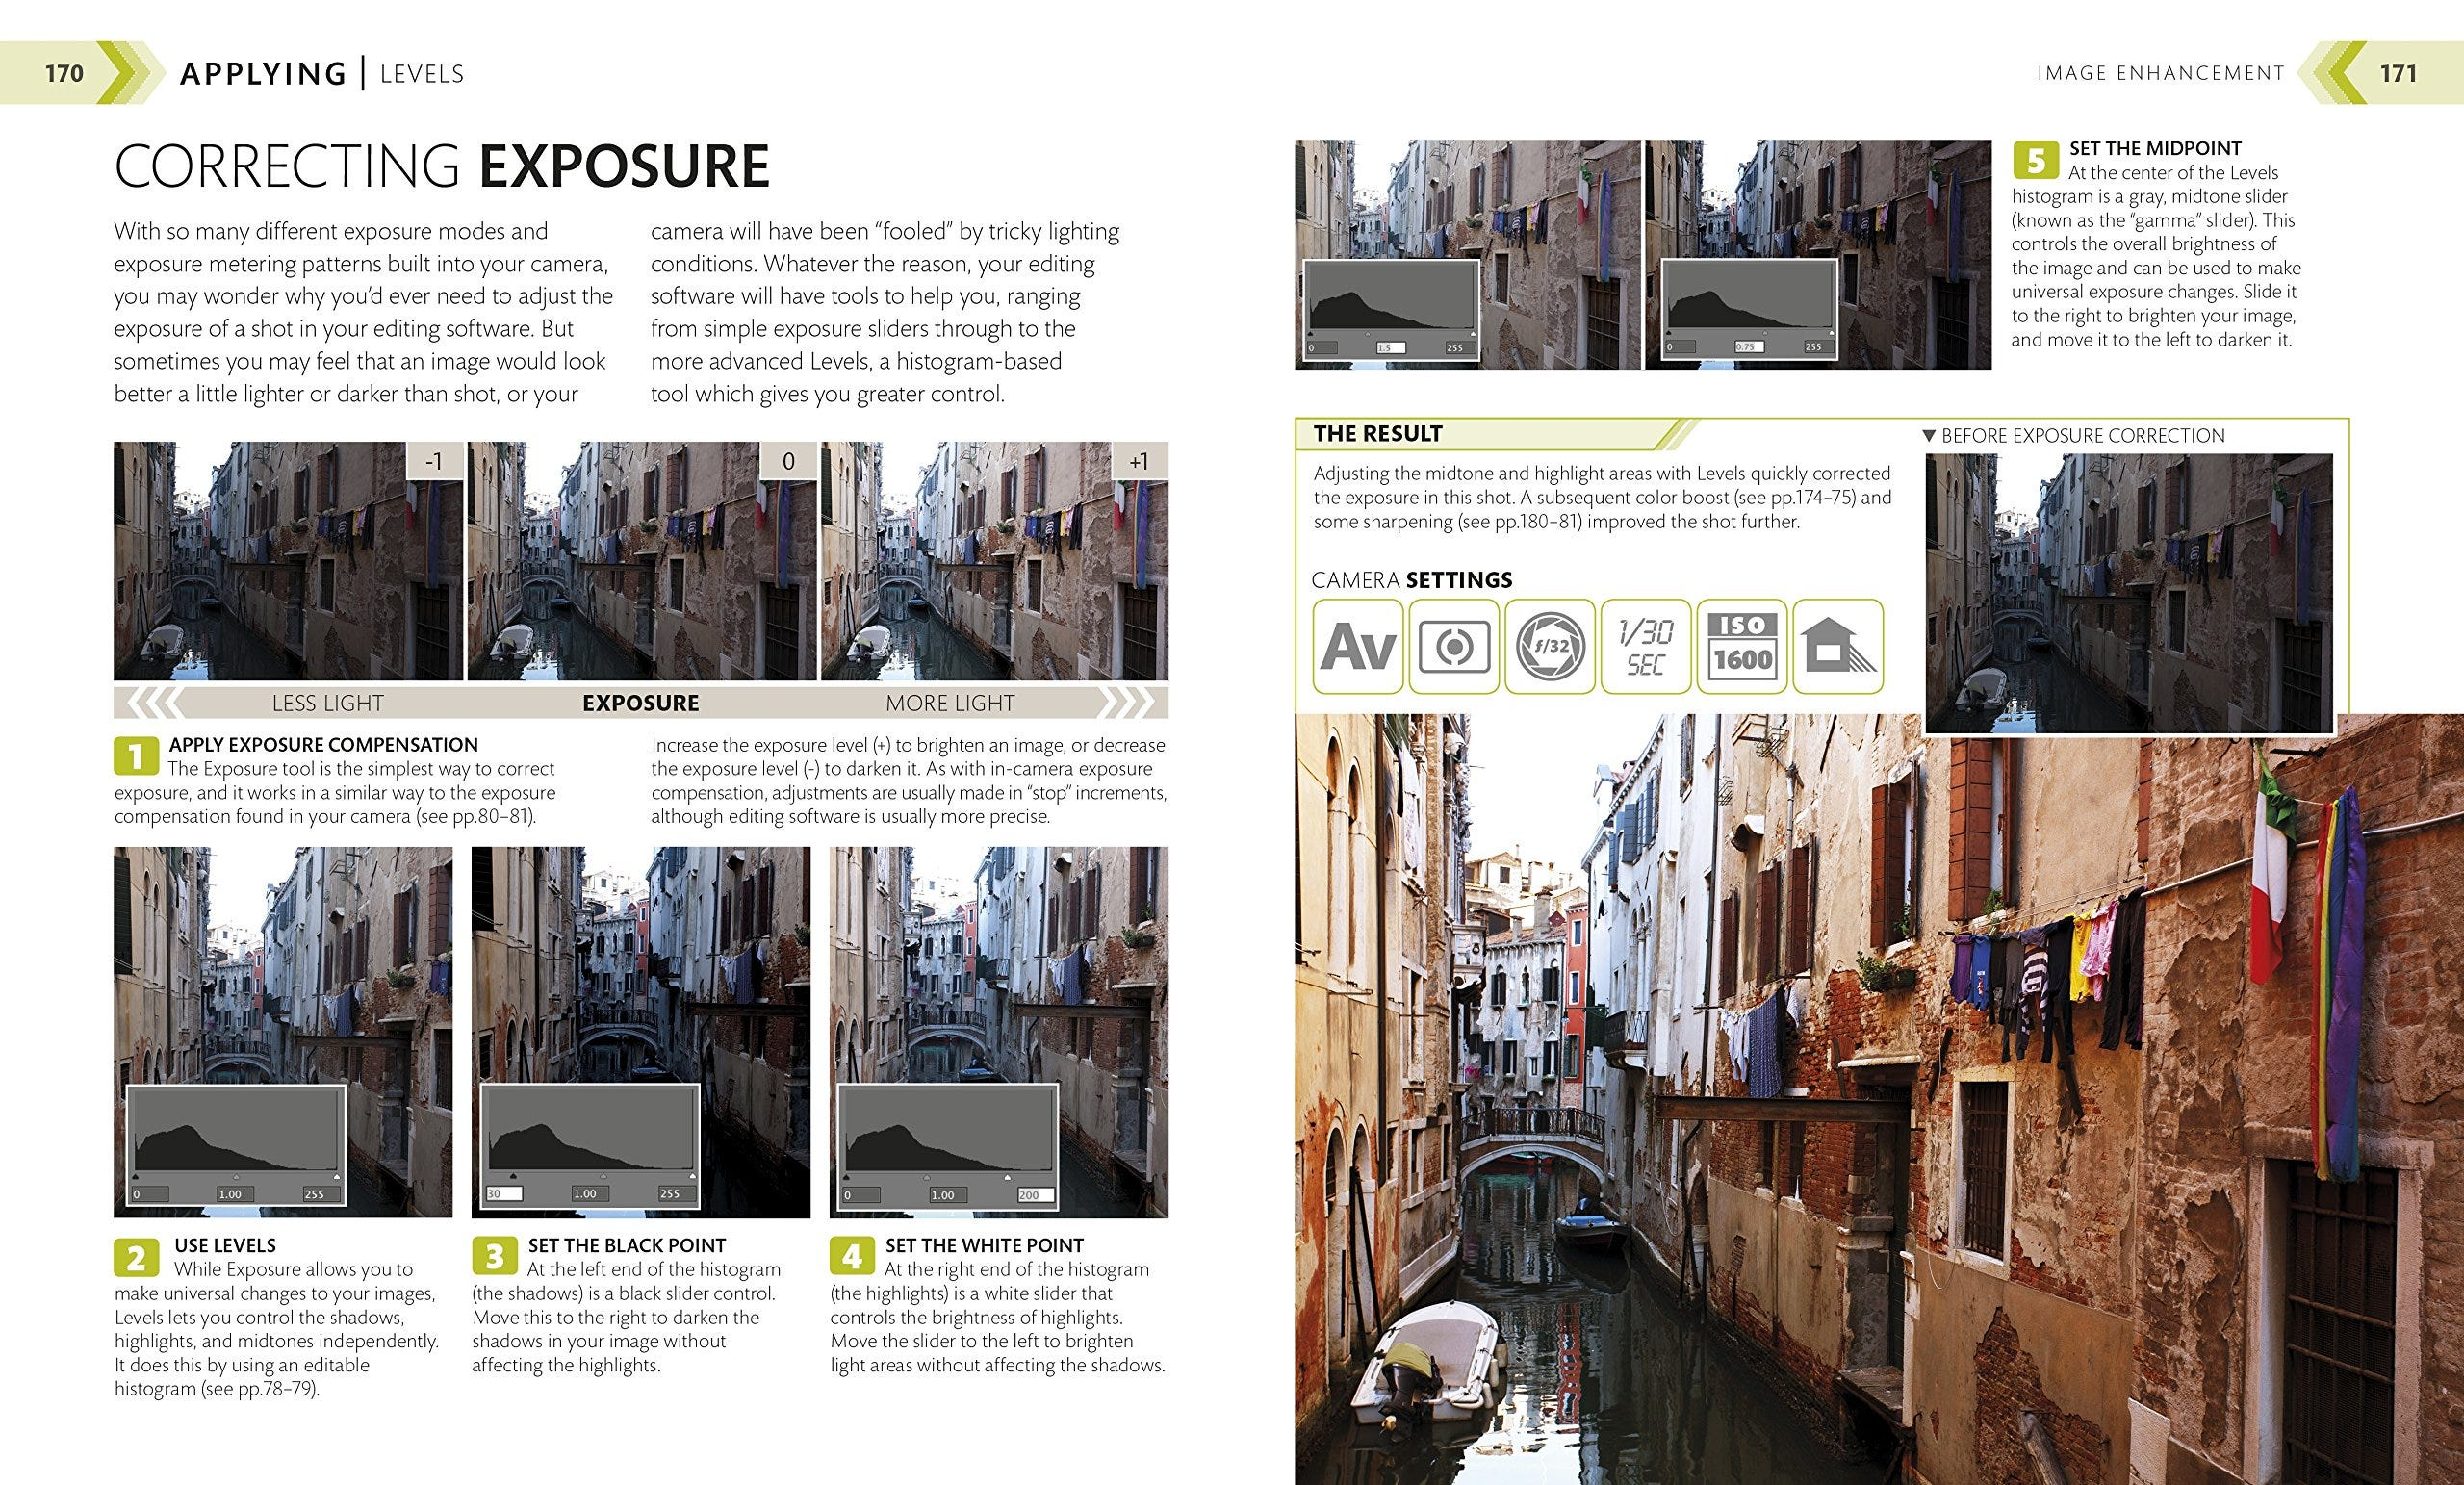 """The """"Correcting Exposure"""" instructions from the book """"The Beginner's Photography Guide."""""""